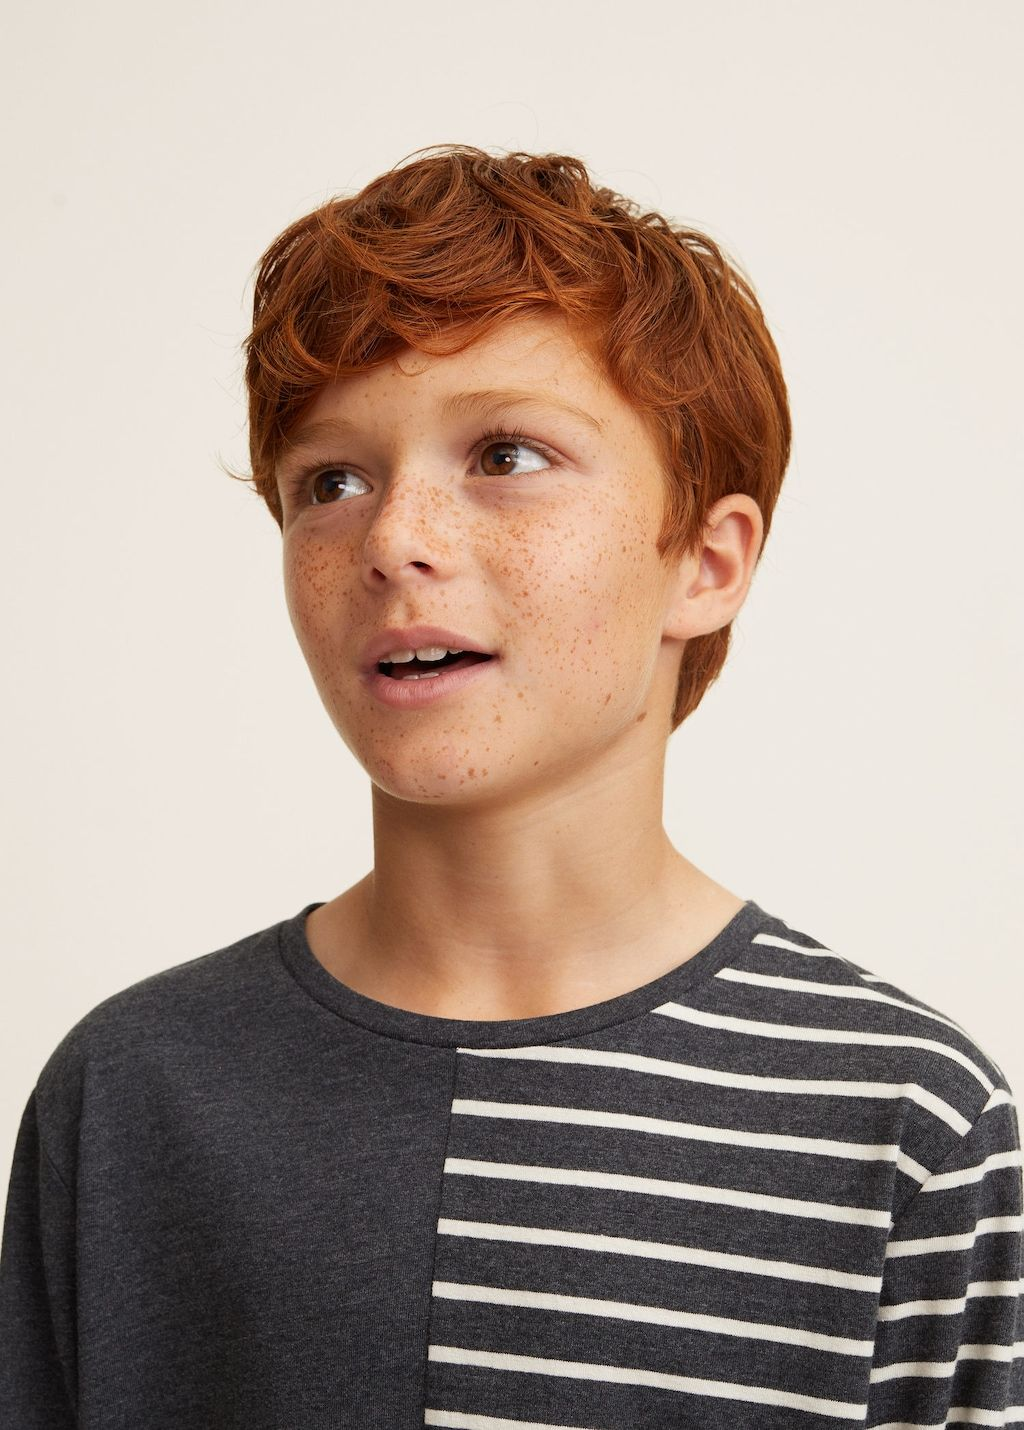 Striped contrast tshirt Boys Beauty of boys, Red head